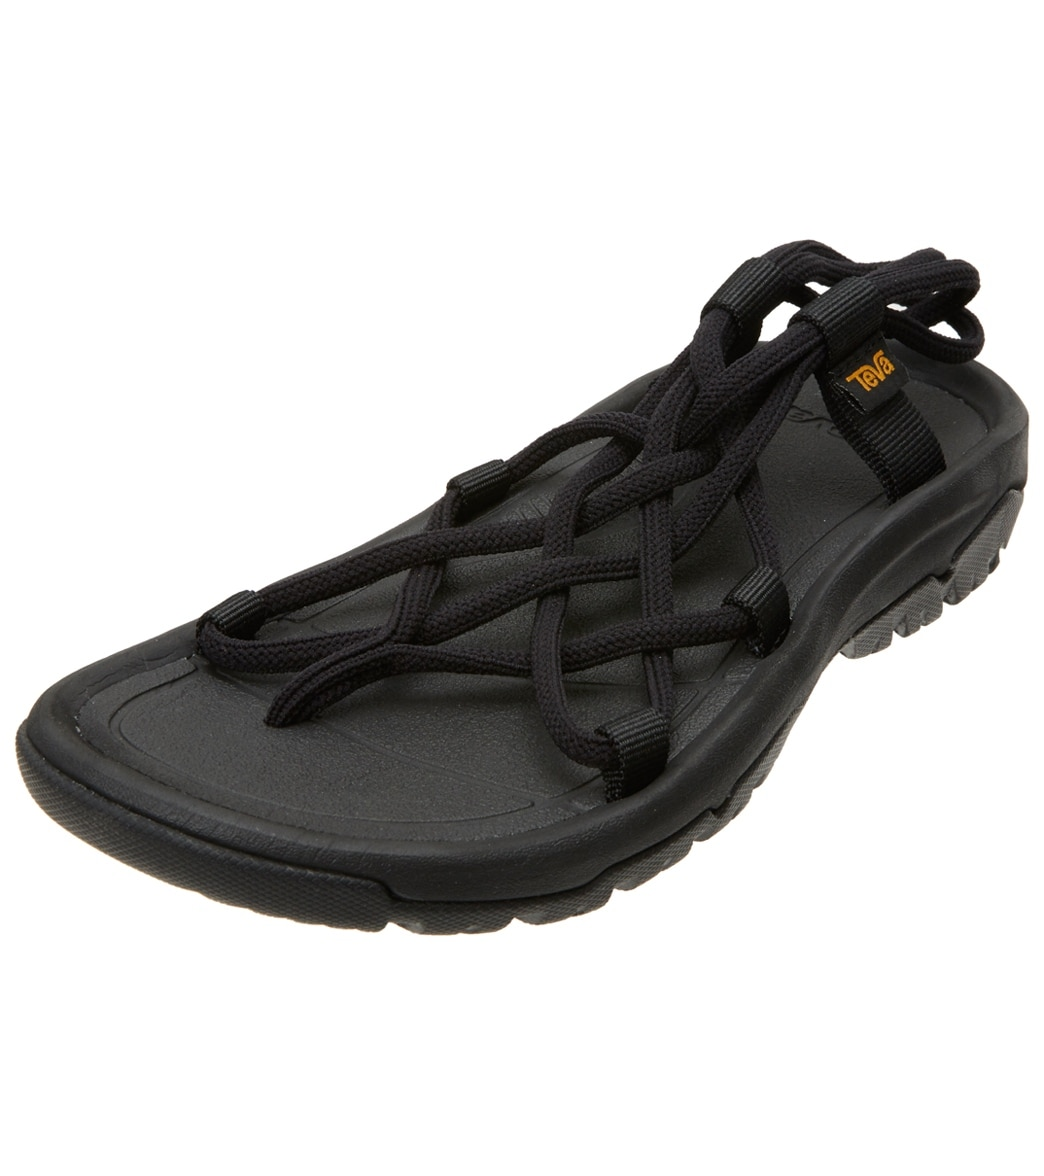 5b80781049df Teva Women s Hurricane XLT Infinity at SwimOutlet.com - Free Shipping